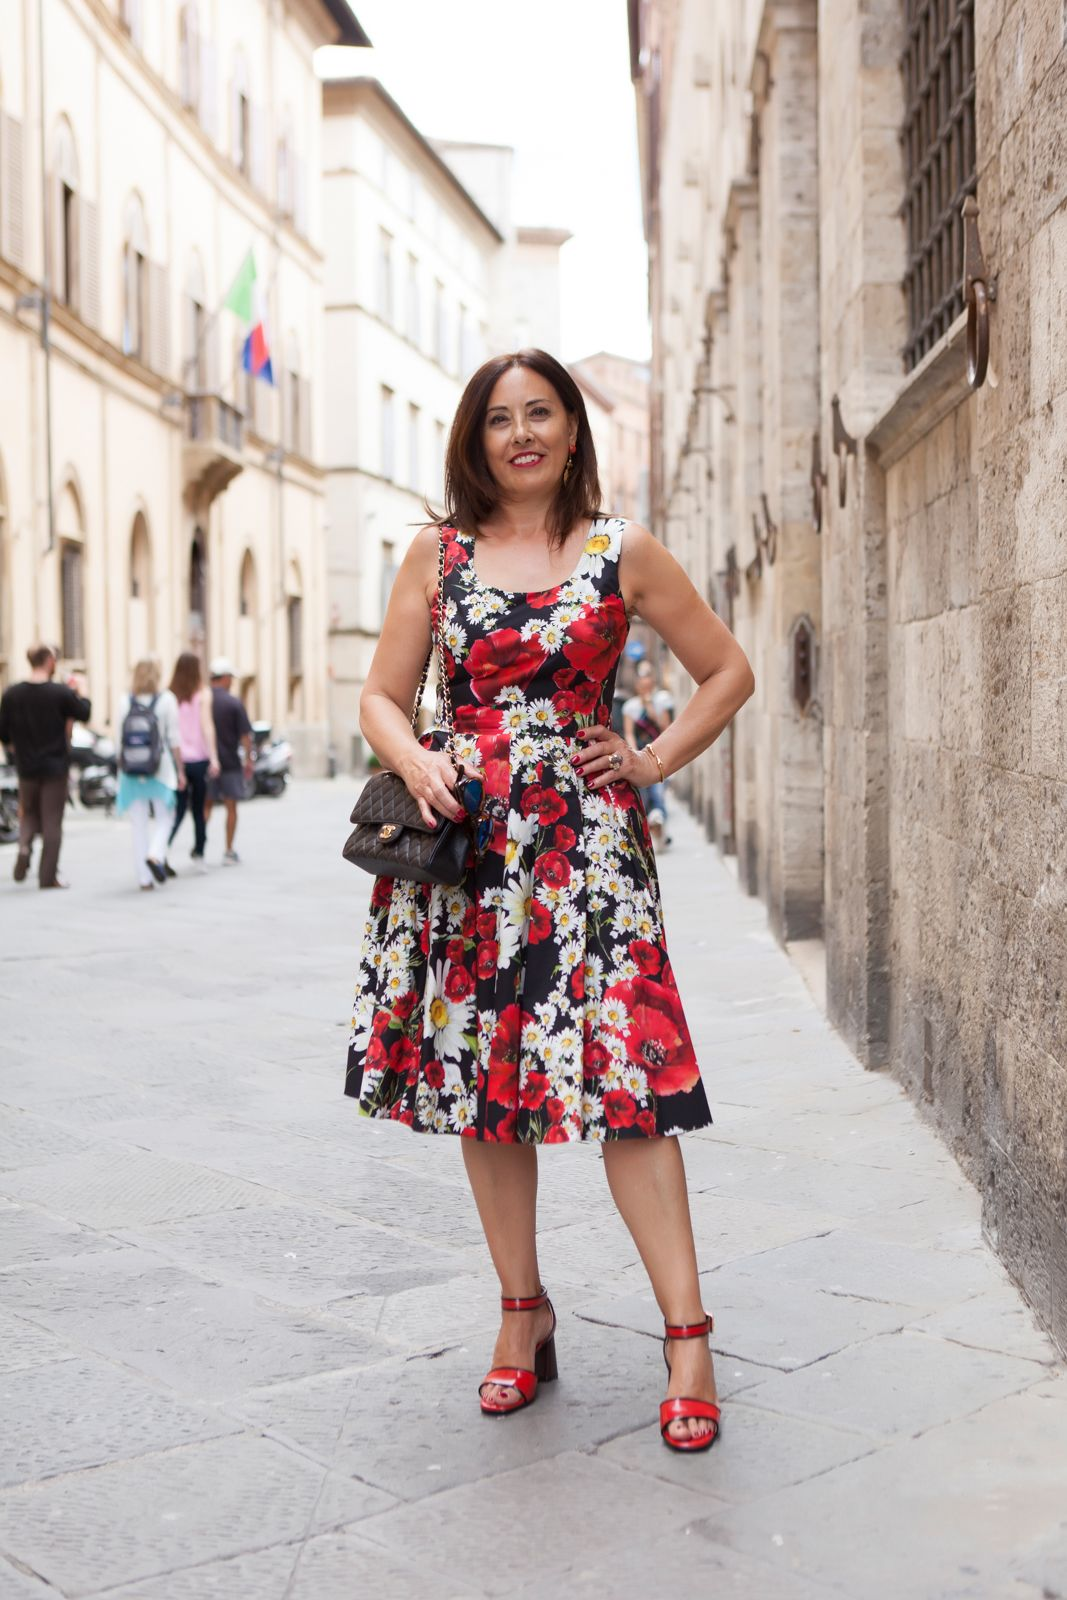 marni shoes - My dress is a flower garden - illesteva sunglasses, dolce gabbana flower dress, amle earrings, marni sandals. photo shooting in Siena - Not Only Twenty Fashion blog